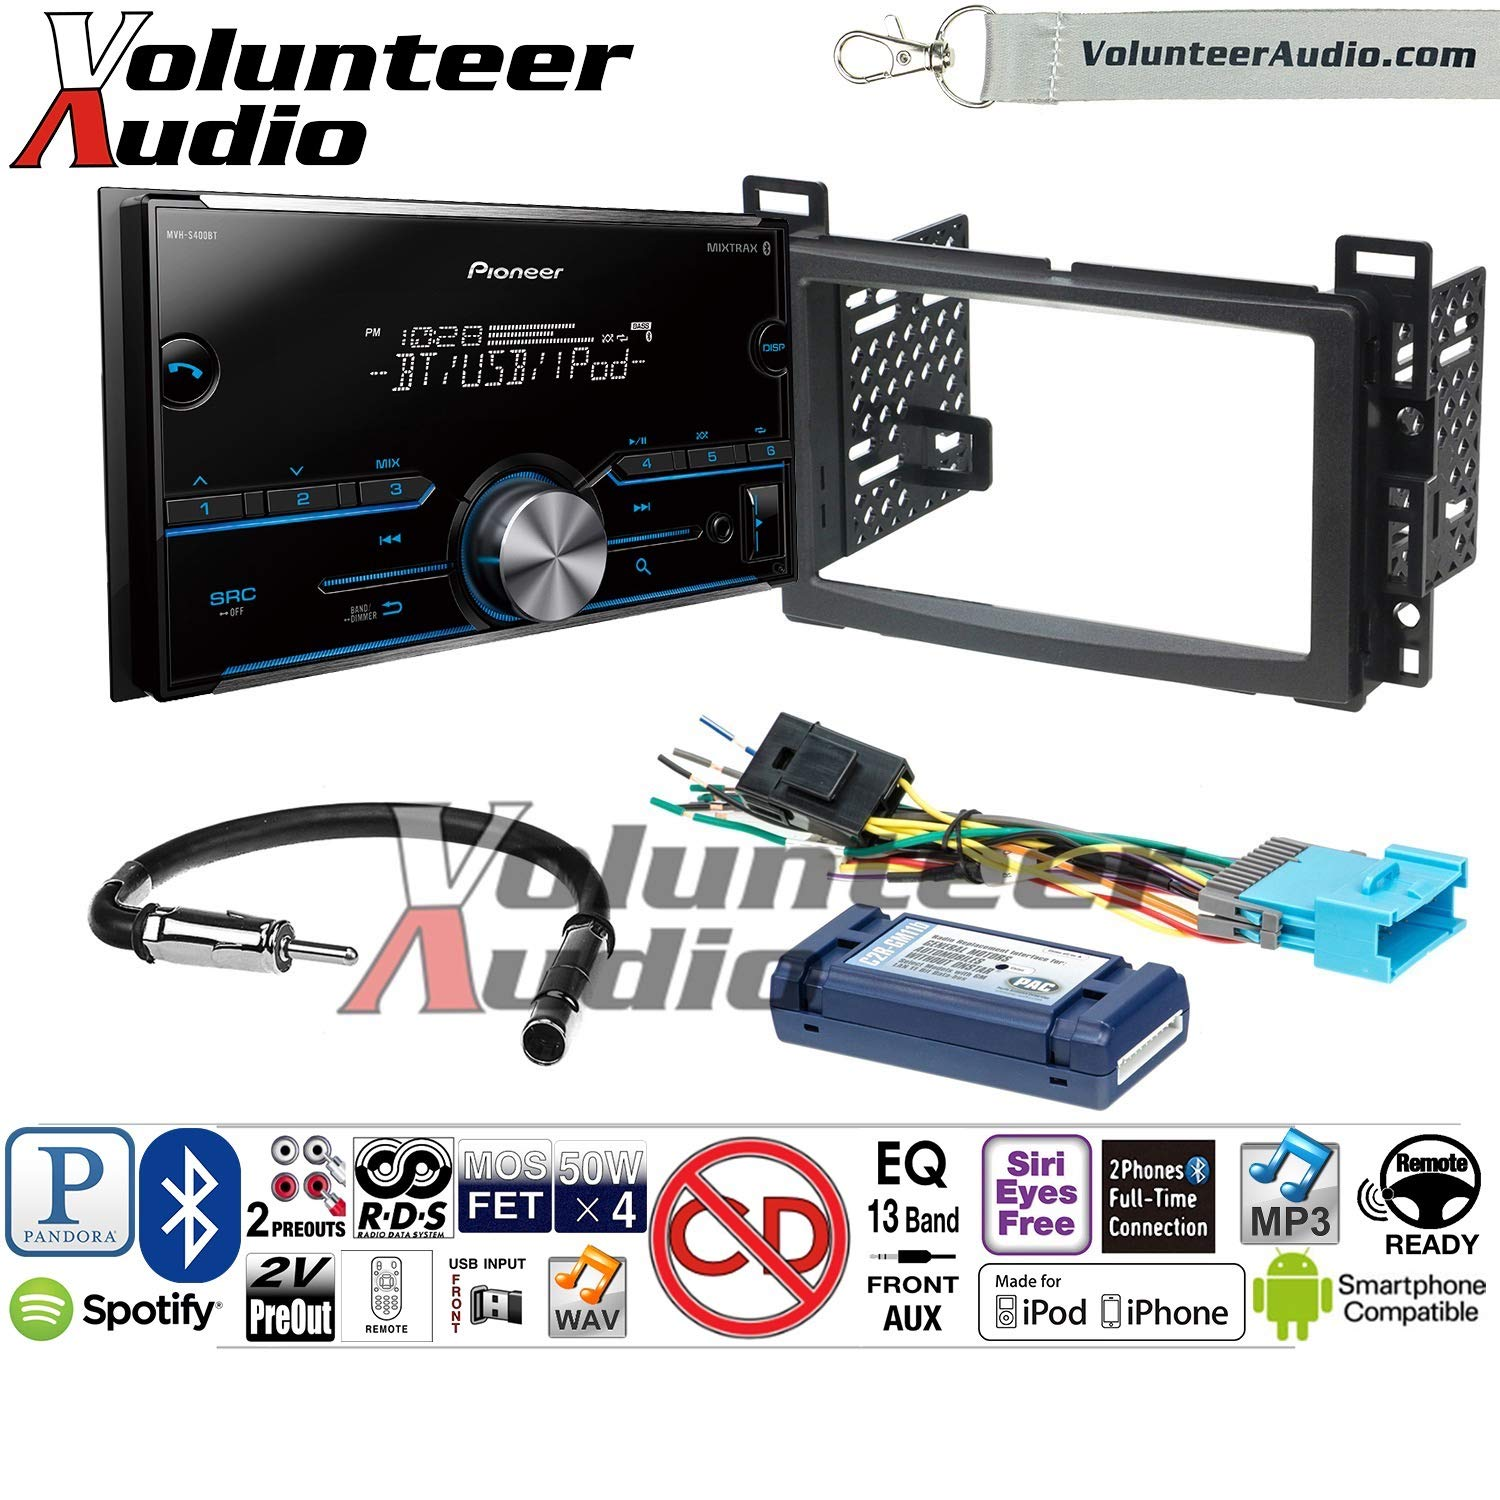 Volunteer Audio Pioneer MVH-S400BT Double Din Radio Install Kit with Bluetooth USB/AUX Fits 2004-2007 Chevrolet Malibu, 2005-2009 Pontiac G6 (with Bose)